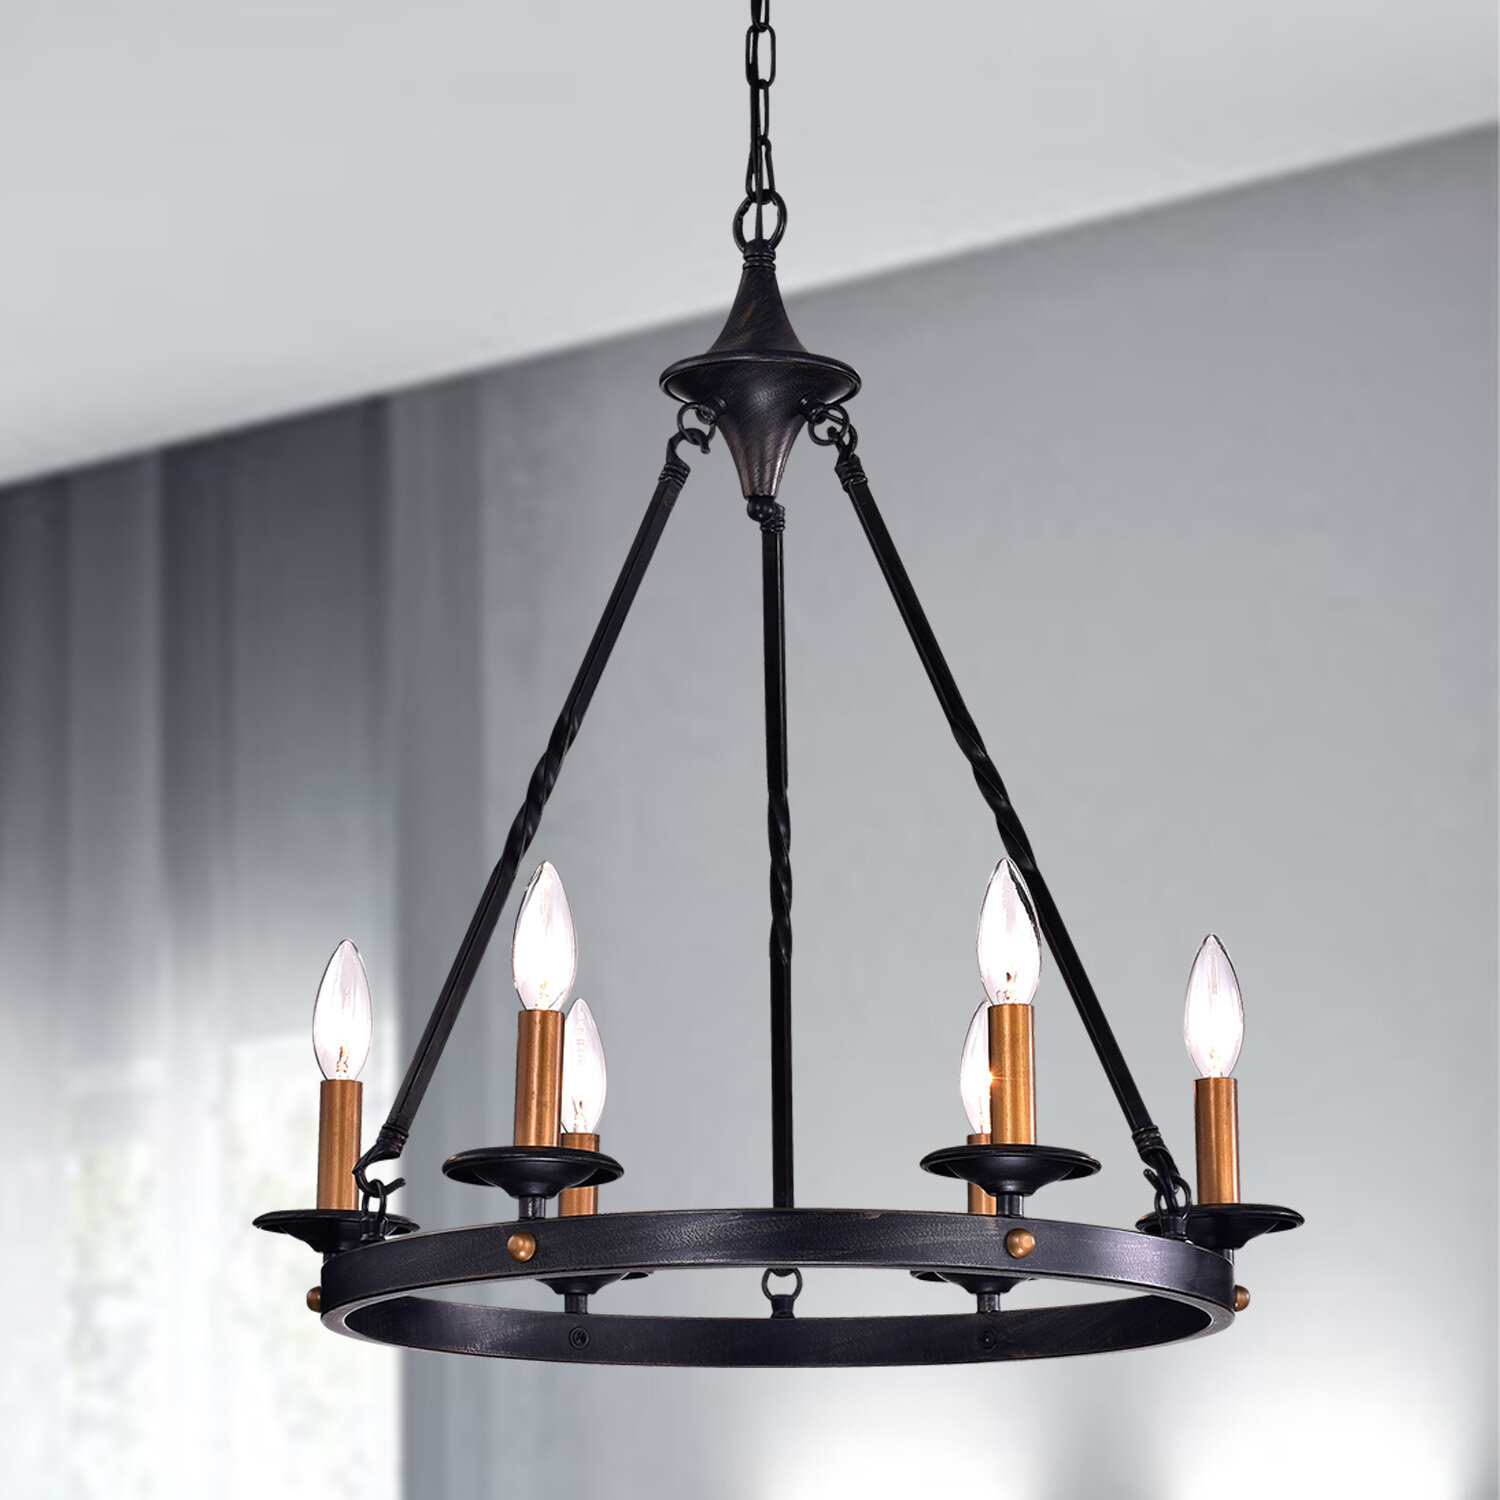 Millwood Pines Brian 6 Light Candle Style Wagon Wheel Chandelier Reviews Wayfair